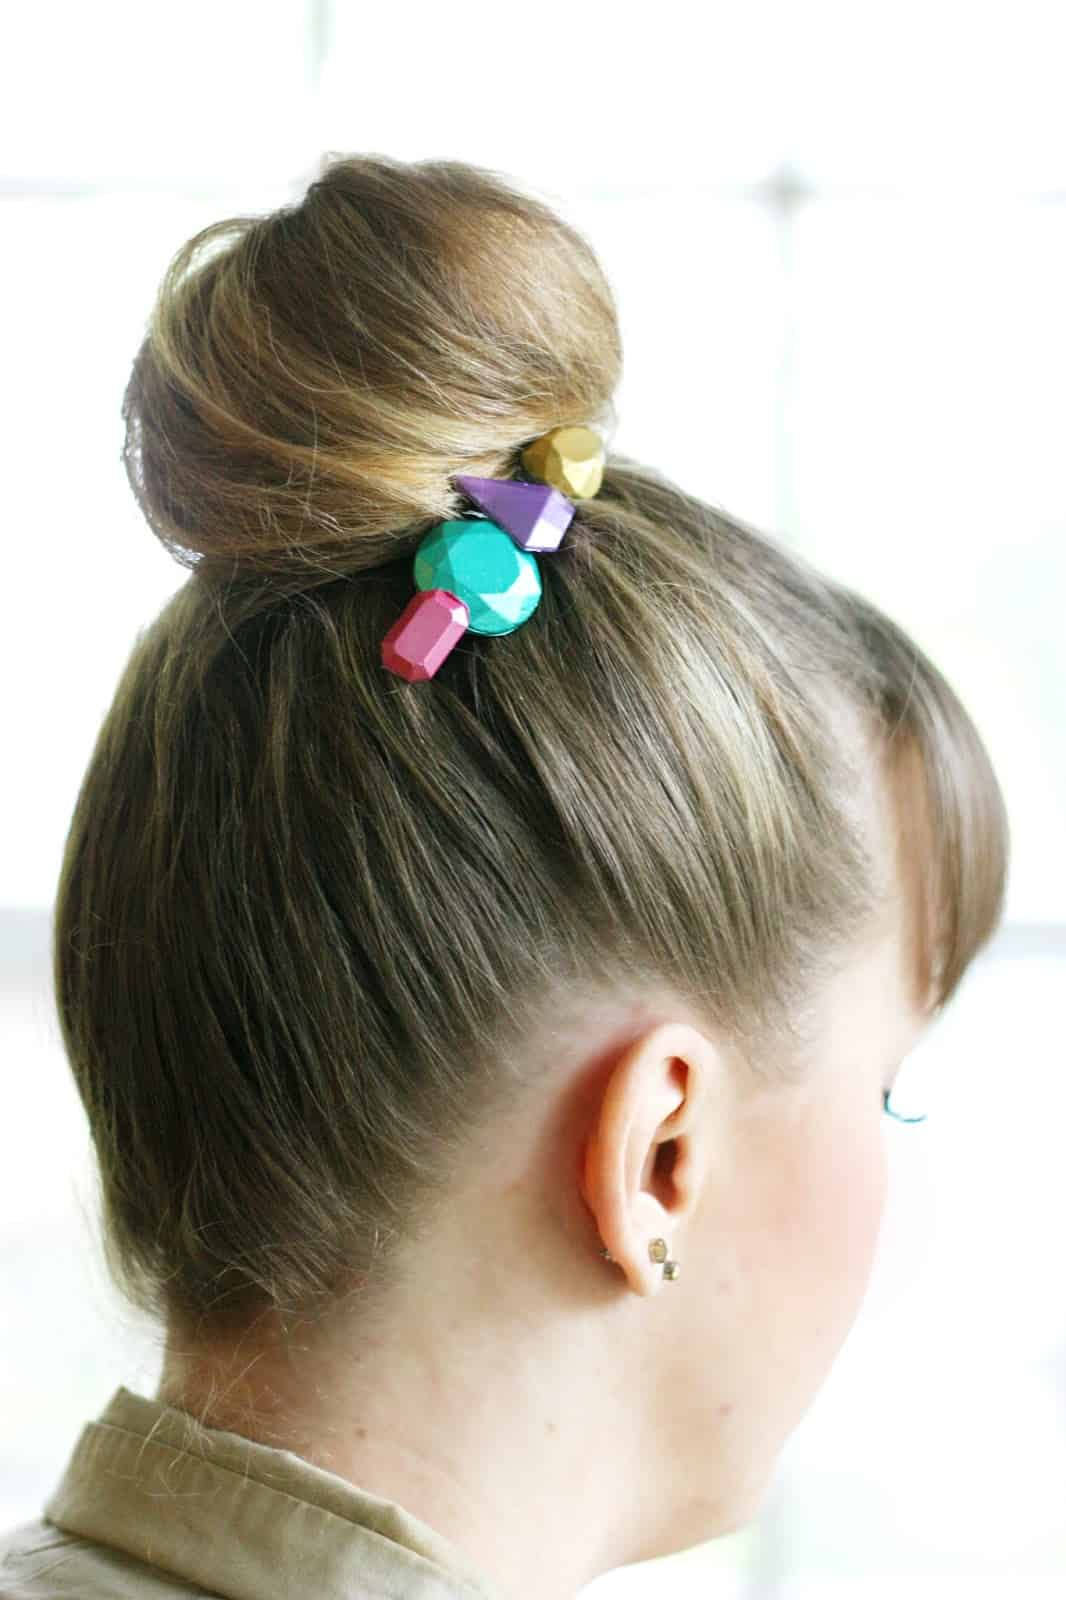 """Create your own hair accessories with Mod Melts and Molds! You'll love these rainbow faux """"gems"""" - you can make a ton of them at once. They make great gifts!"""